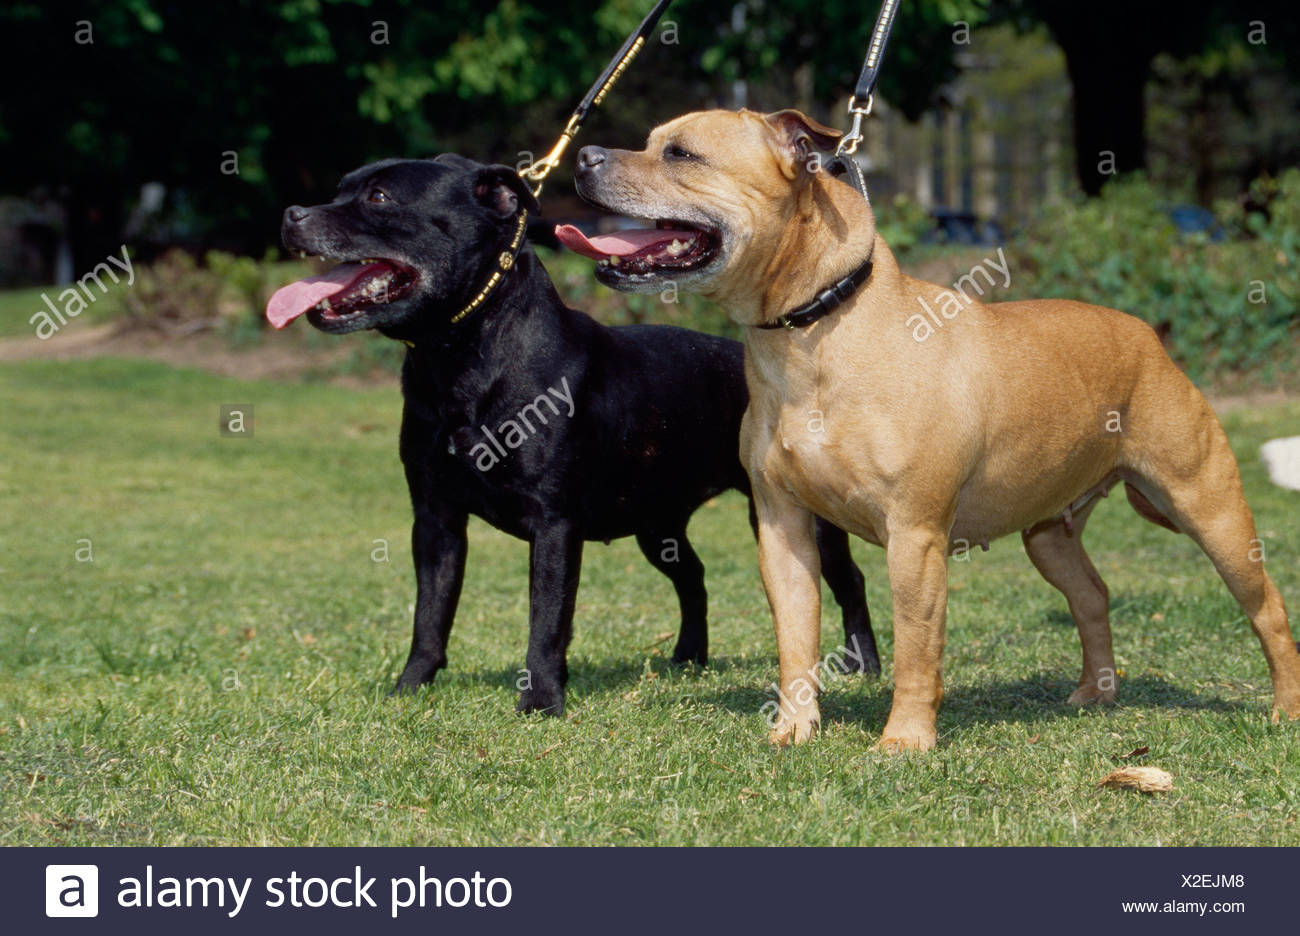 STAFFORDSHIRE BULL TERRIERS OUTSIDE ON LEASHES/ ENGLAND - Stock Image